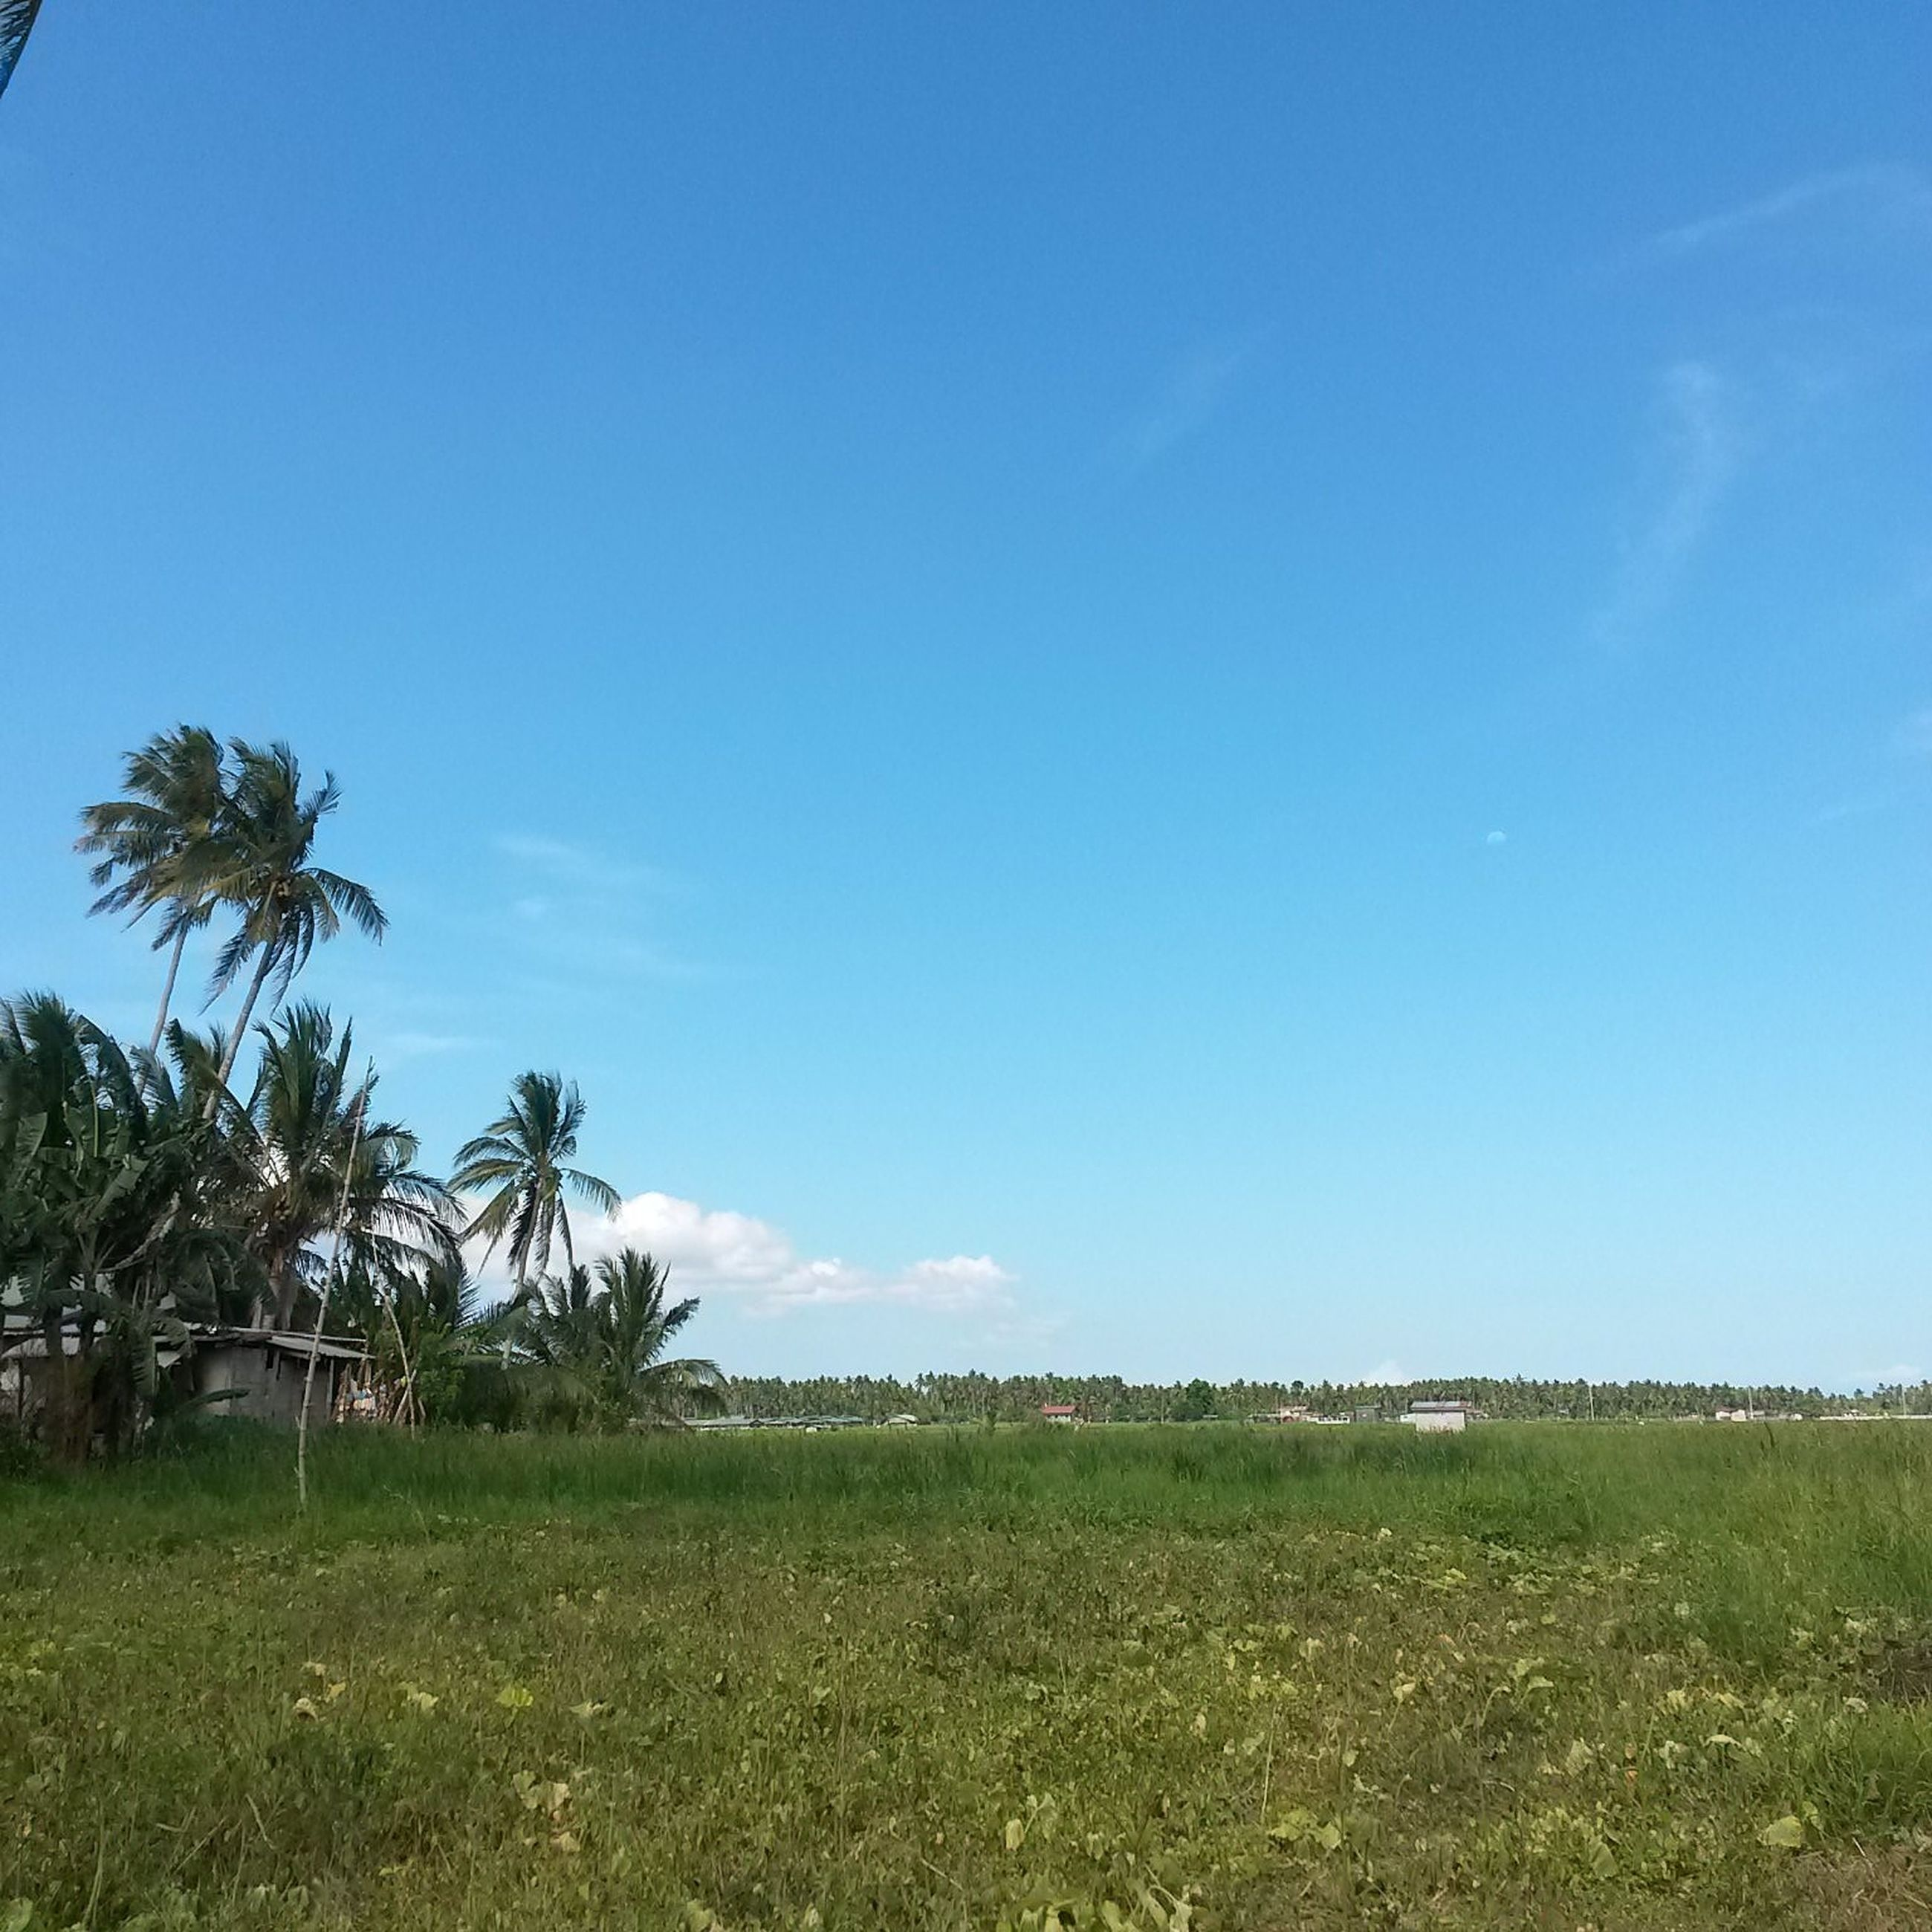 grass, blue, tranquility, tranquil scene, field, landscape, tree, clear sky, scenics, beauty in nature, copy space, sky, growth, nature, grassy, green color, horizon over land, idyllic, non-urban scene, day